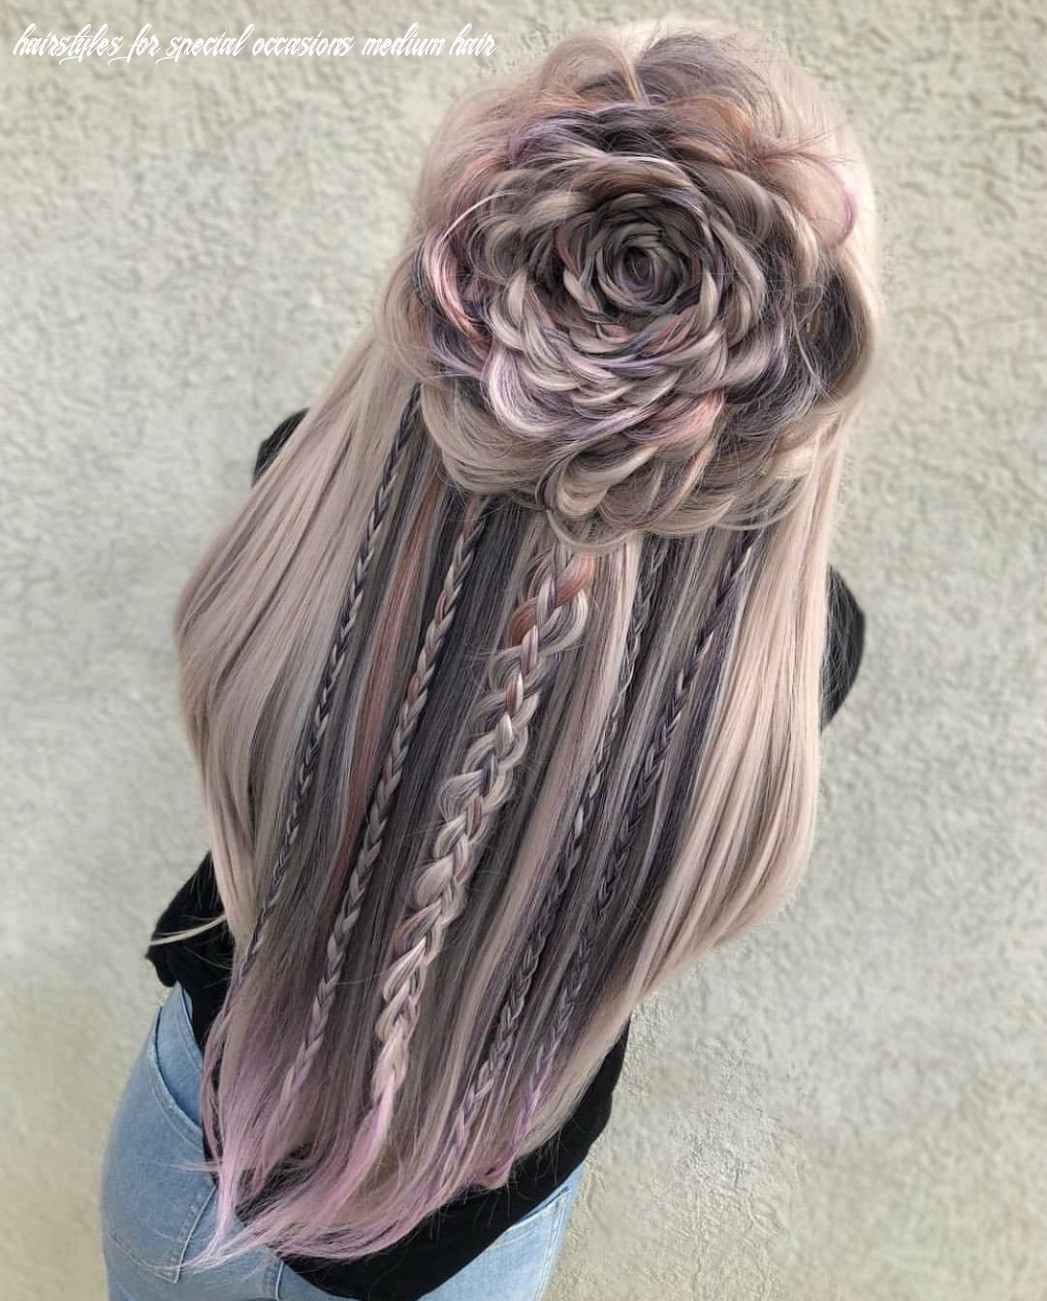 11 amazing braided hairstyles for long hair 11 women hair styles hairstyles for special occasions medium hair